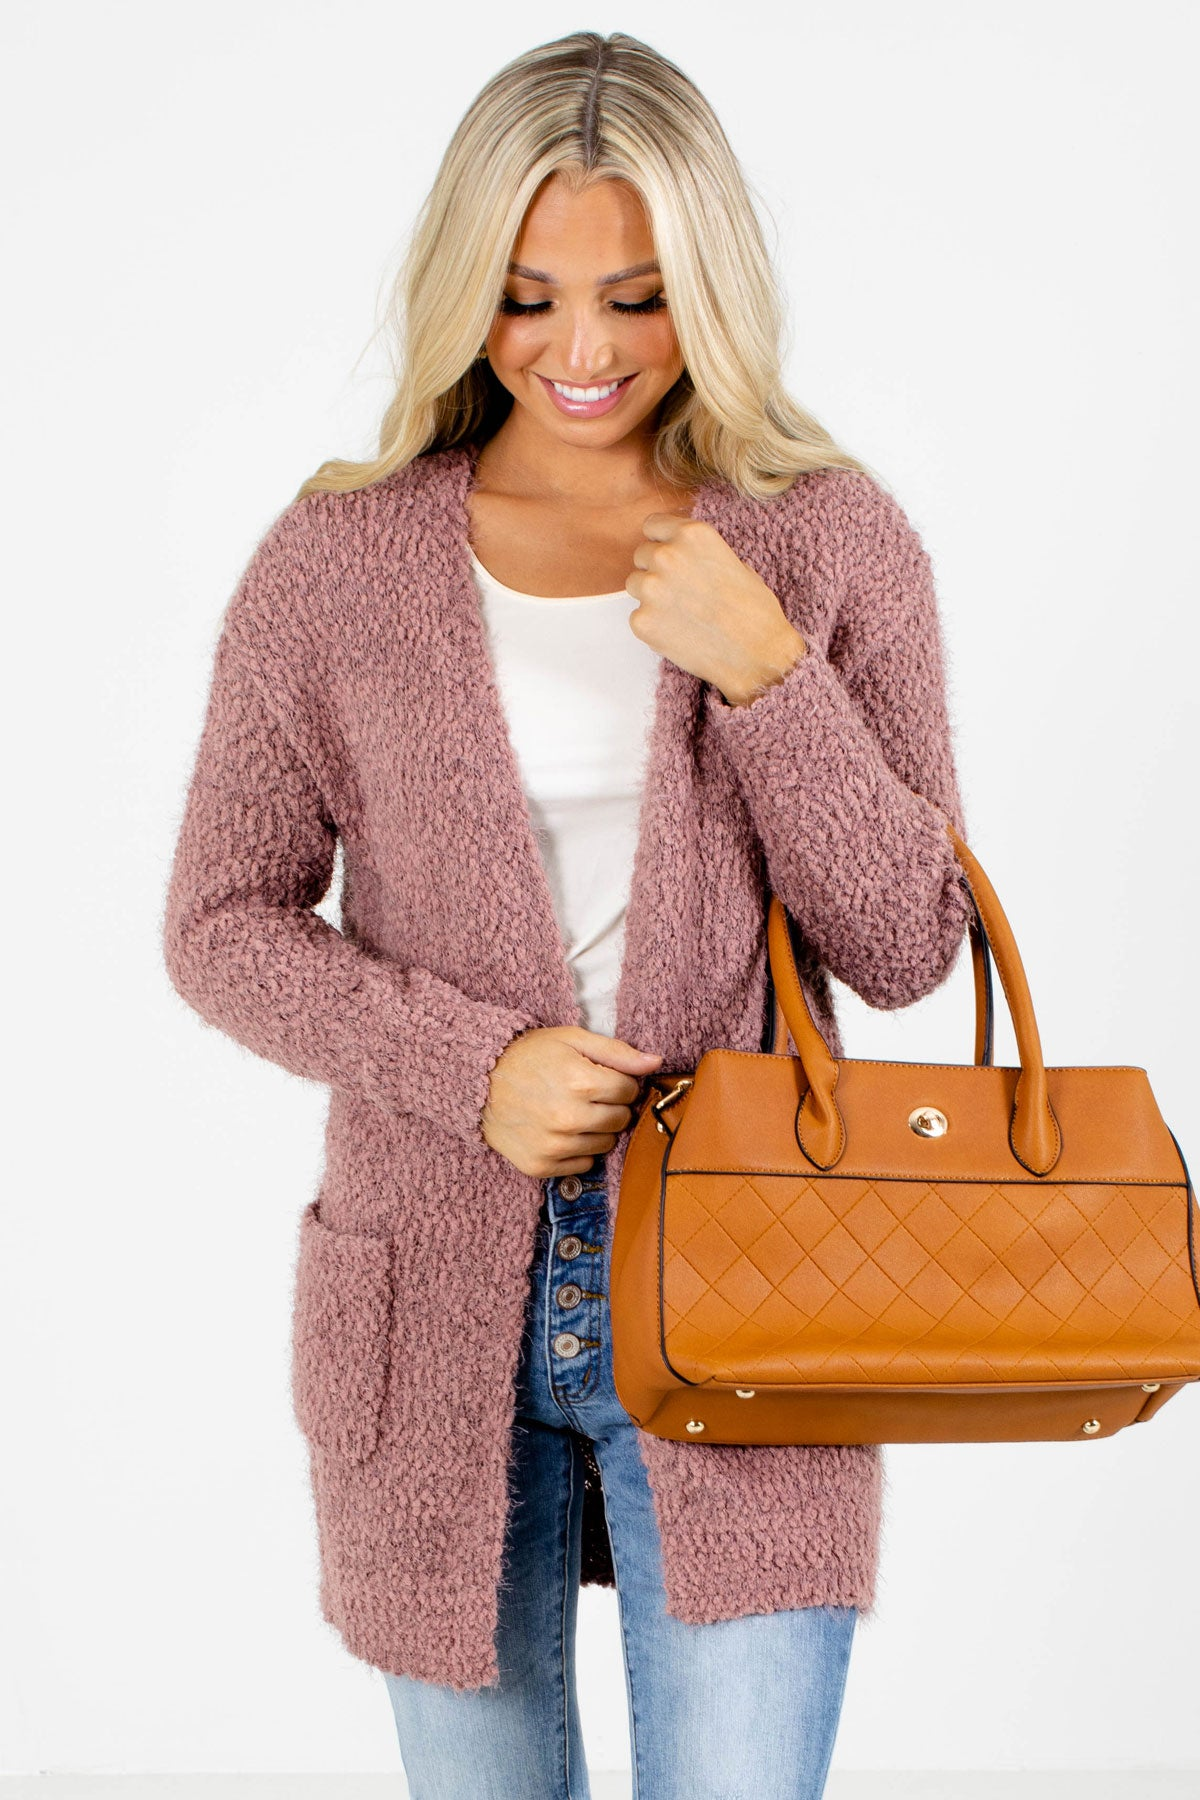 Mauve Popcorn Knit Boutique Cardigans for Women